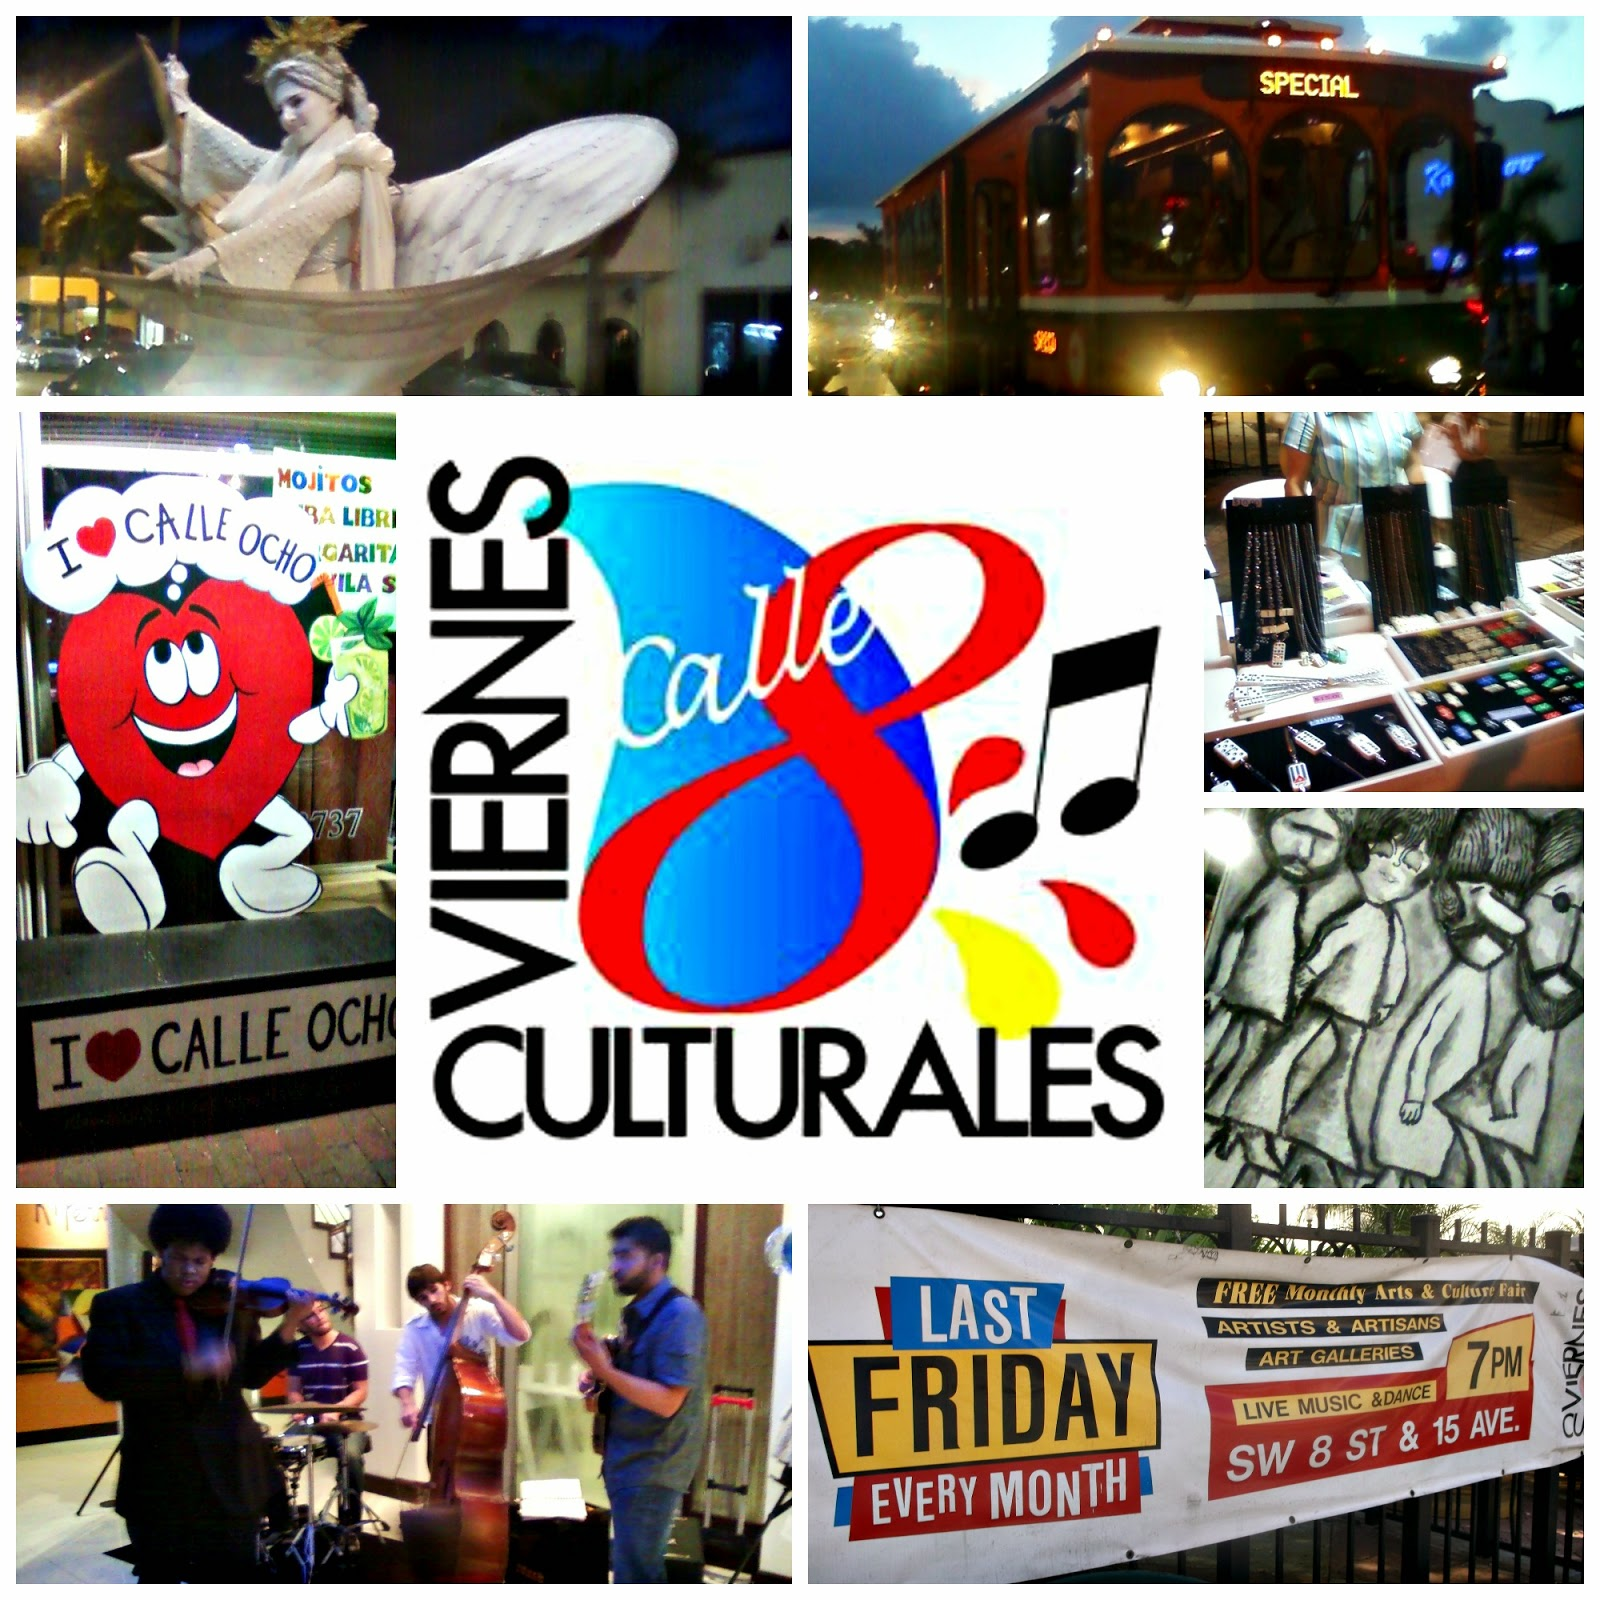 Viernes Culturales,Calle Ocho,Little Havana,miami,Florida,Block Party,Cubans in US,Domino Park,Pequeña Habana